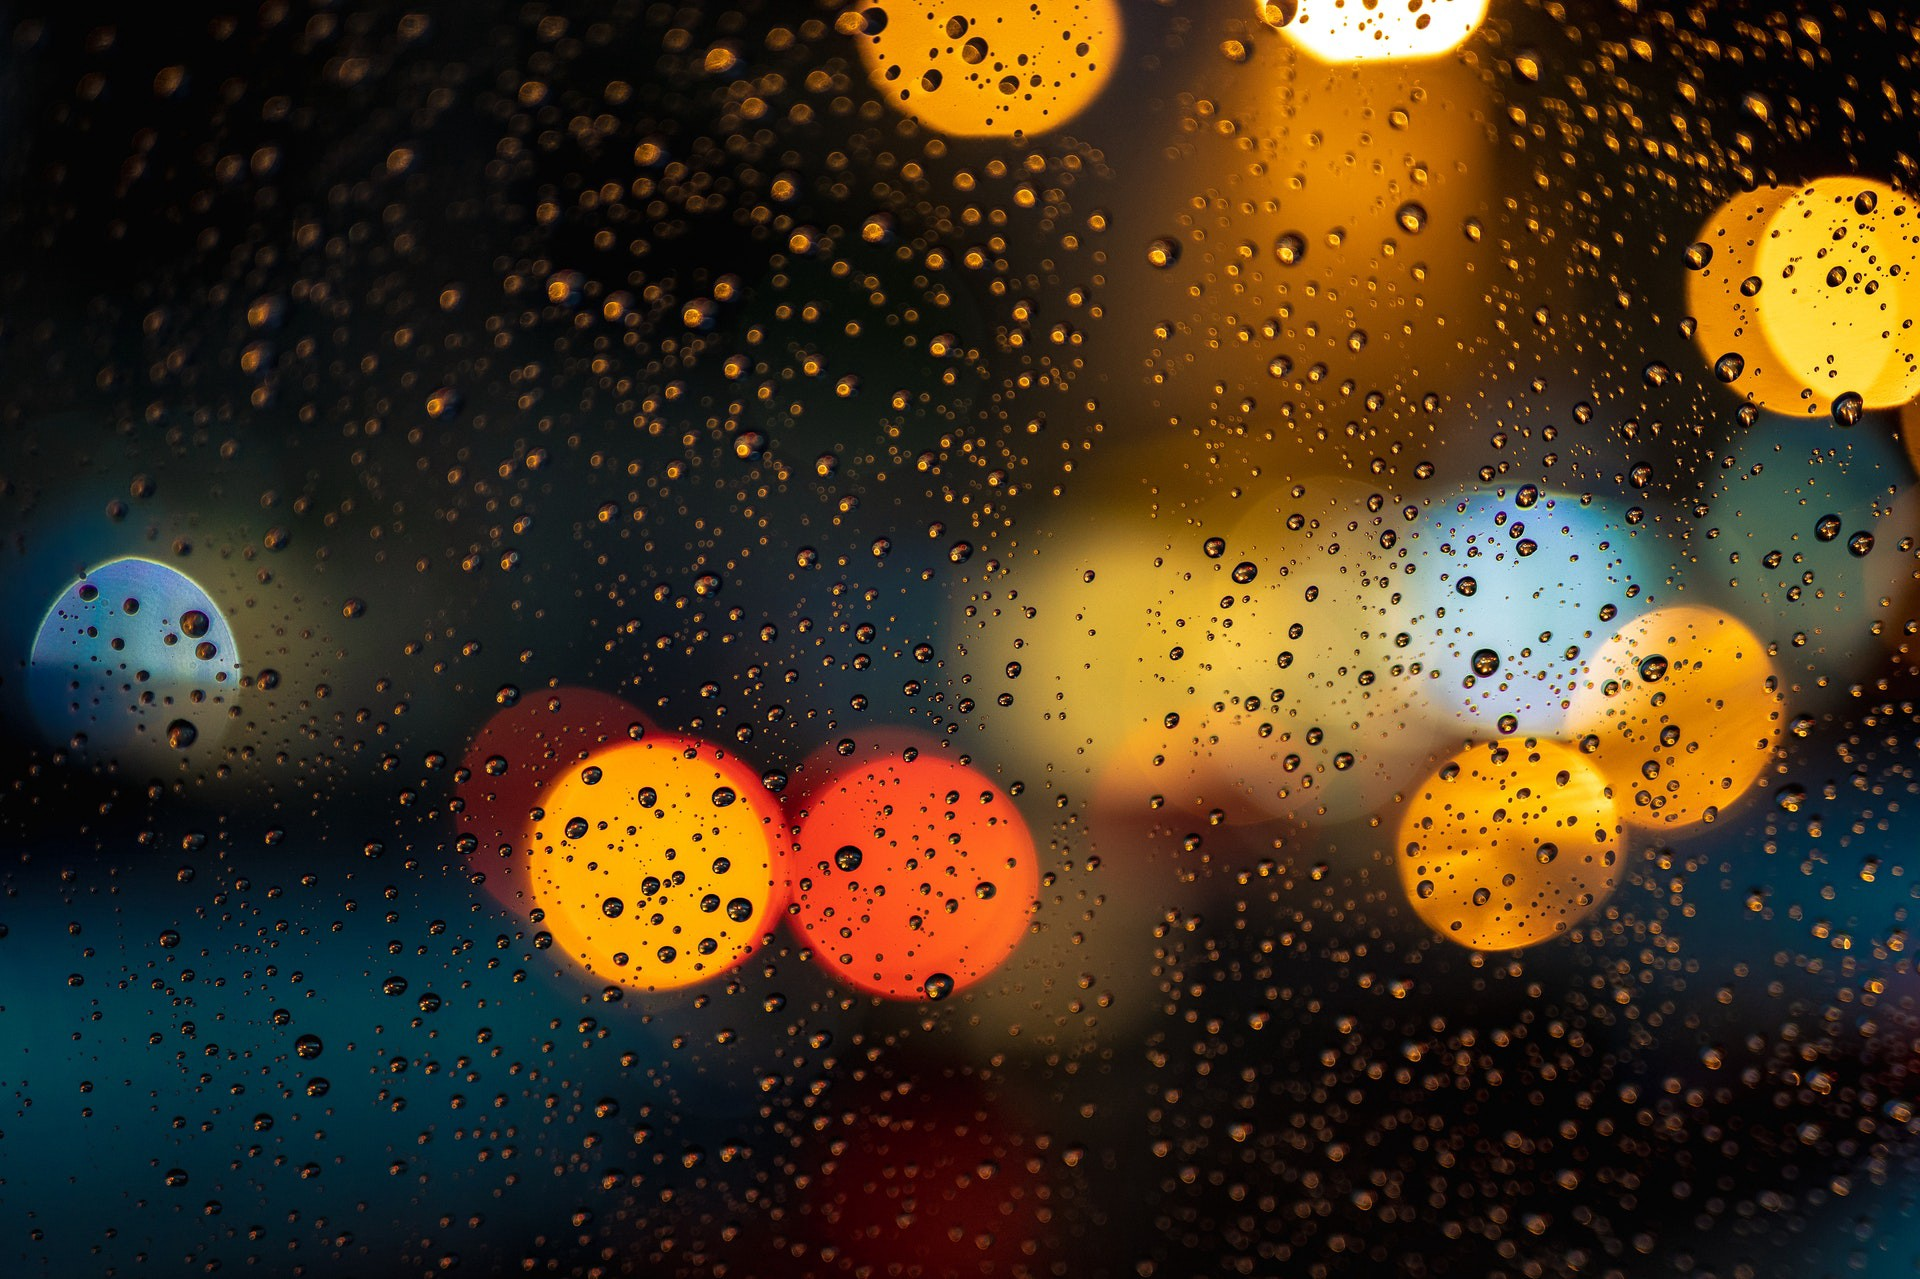 Water droplets on surface against lights in the background